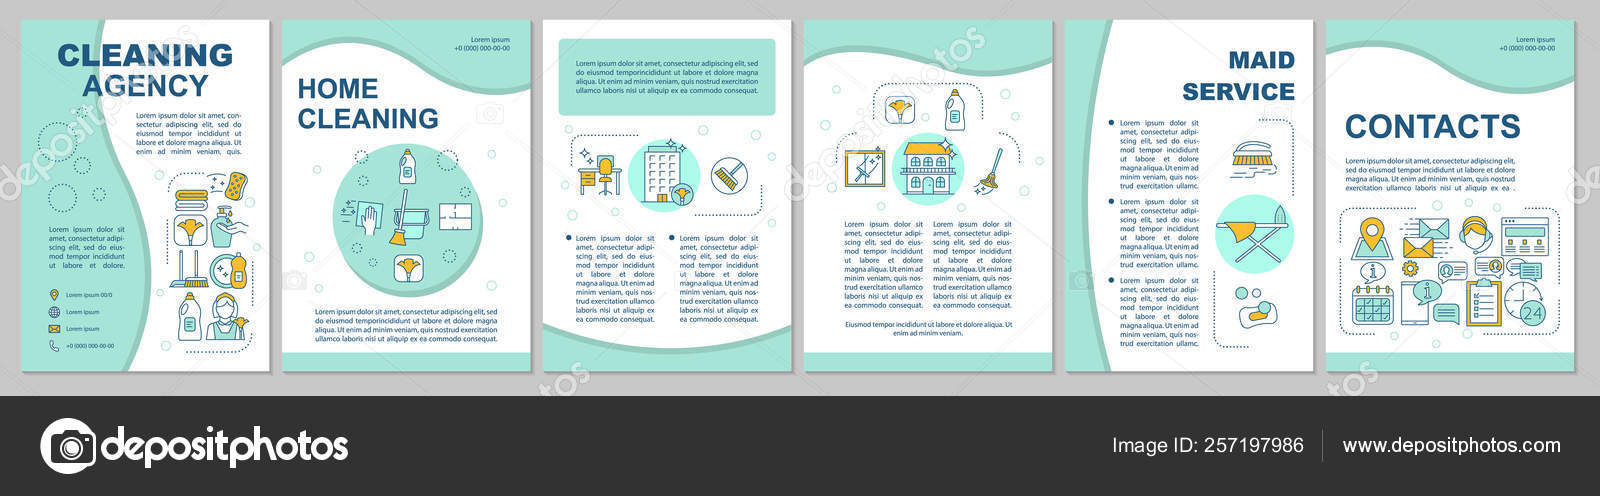 Cleaning agency brochure template layout — Stock Vector © bsd #257197986